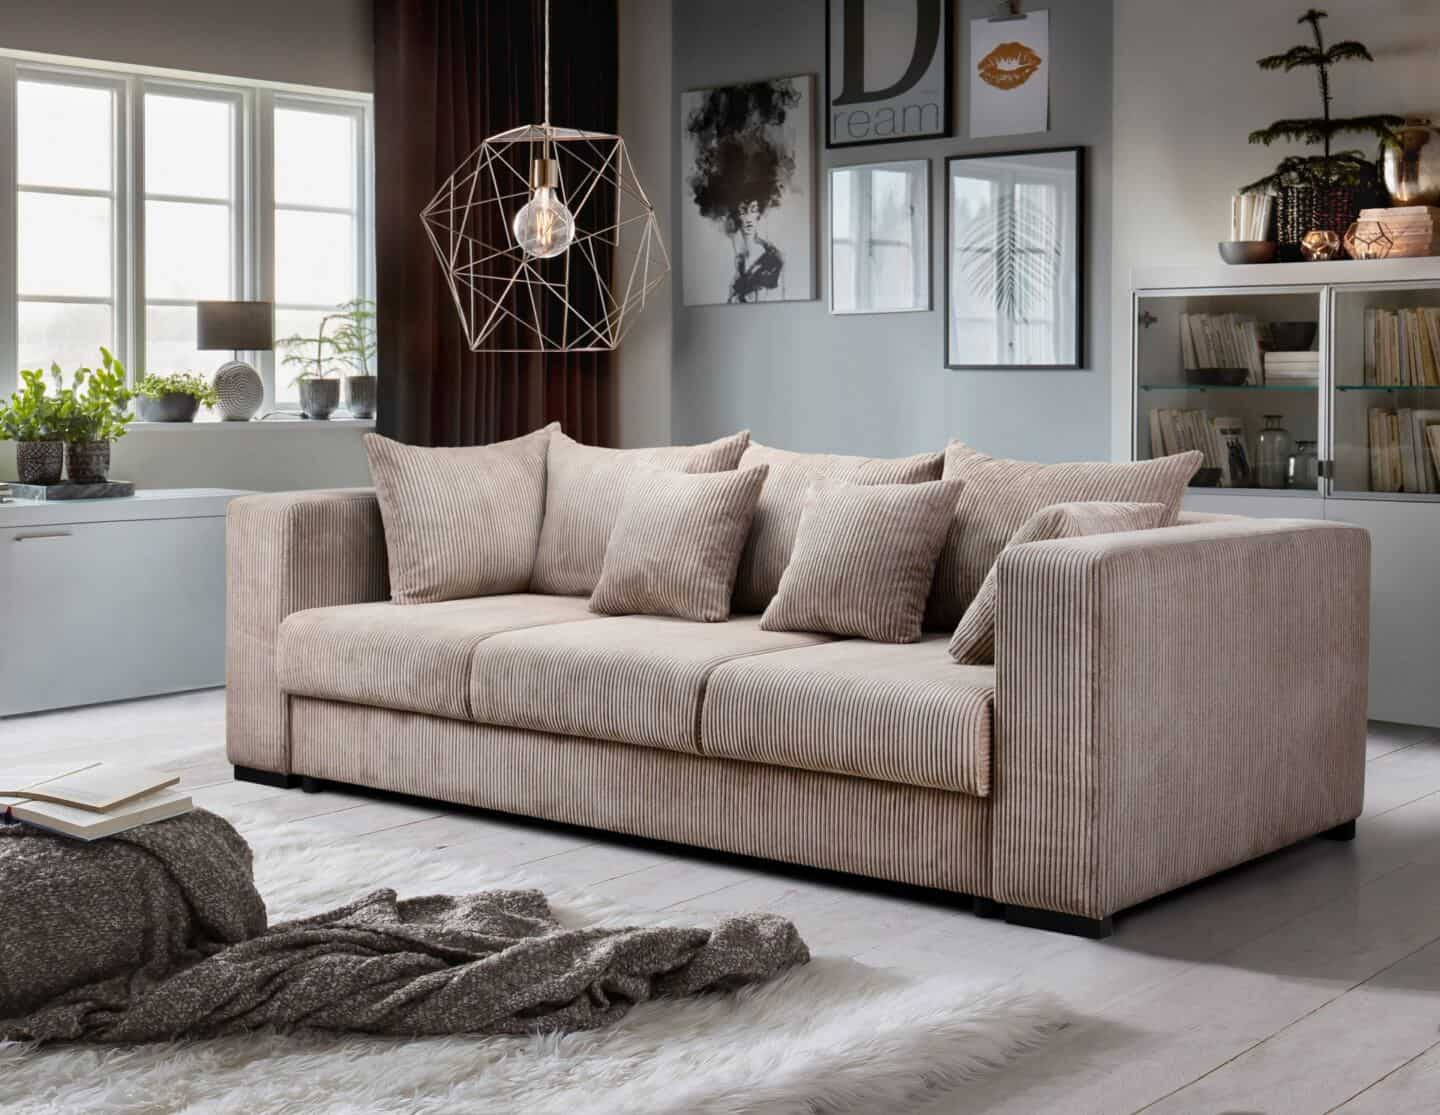 How to choose the perfect sofa for your lifestyle.  Beige Corduroy sofa in middle of room with geometric light suspended above